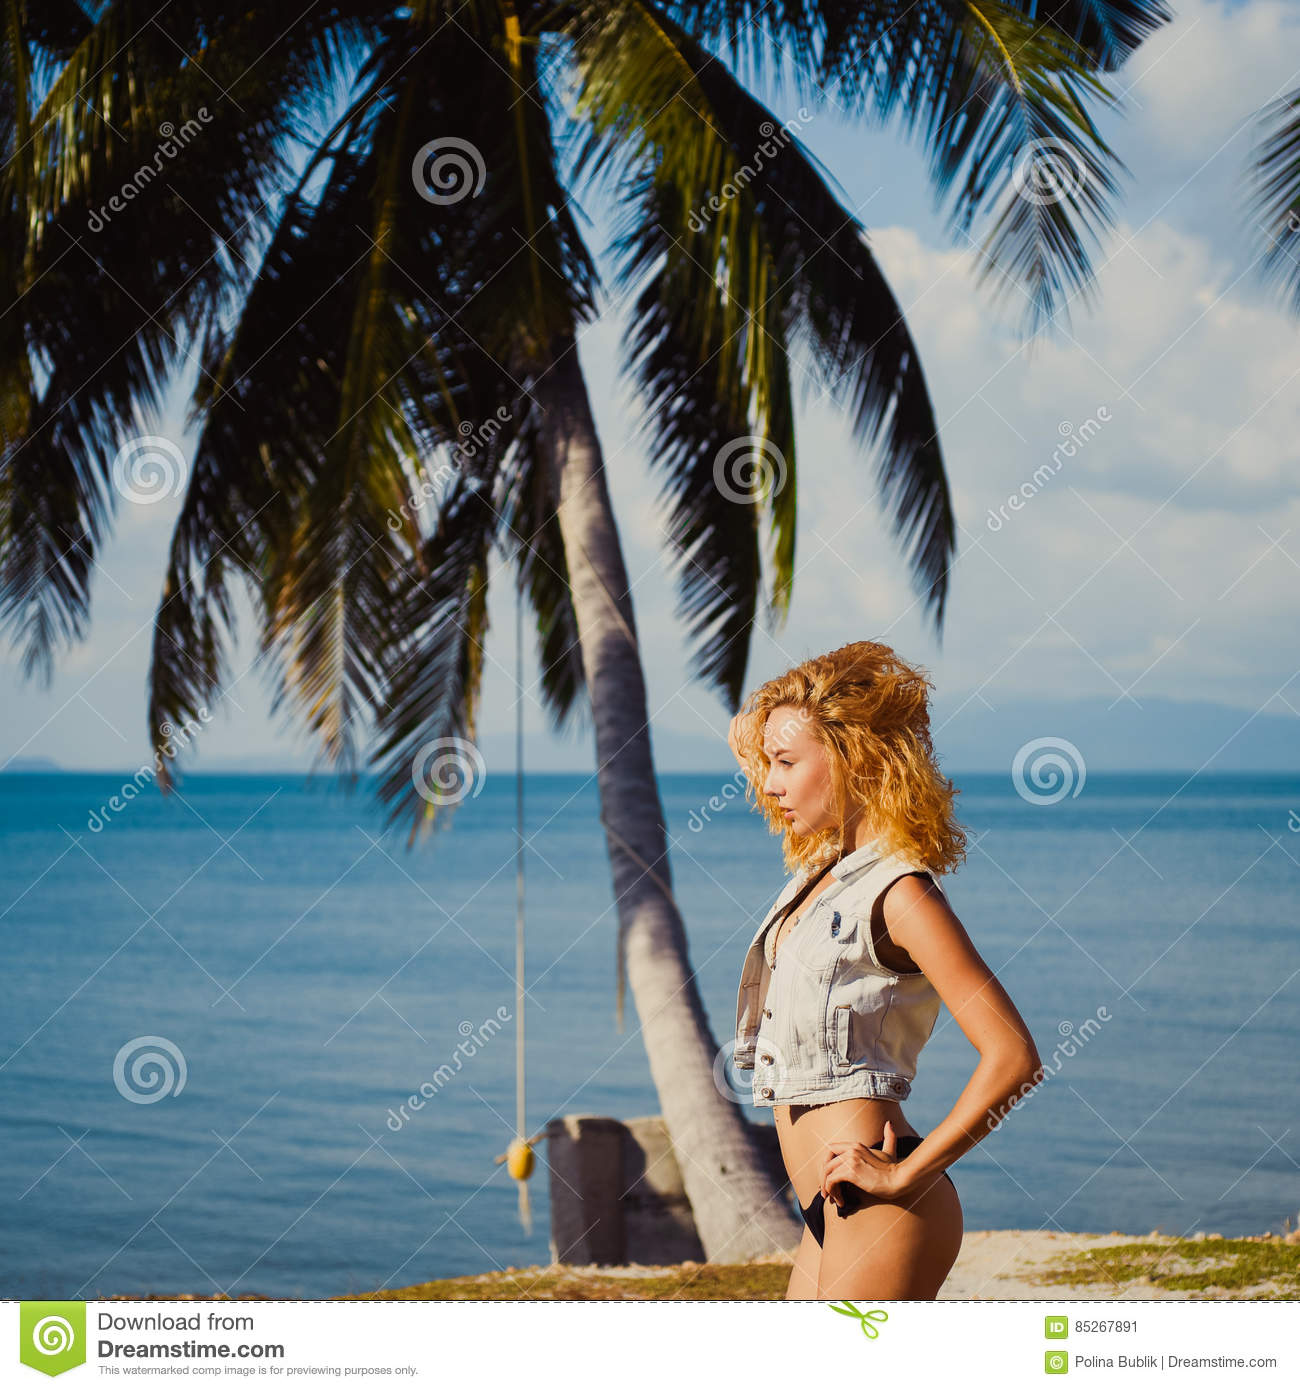 Oung tan slim redhead girl on background of blue sky in the summer sea palm